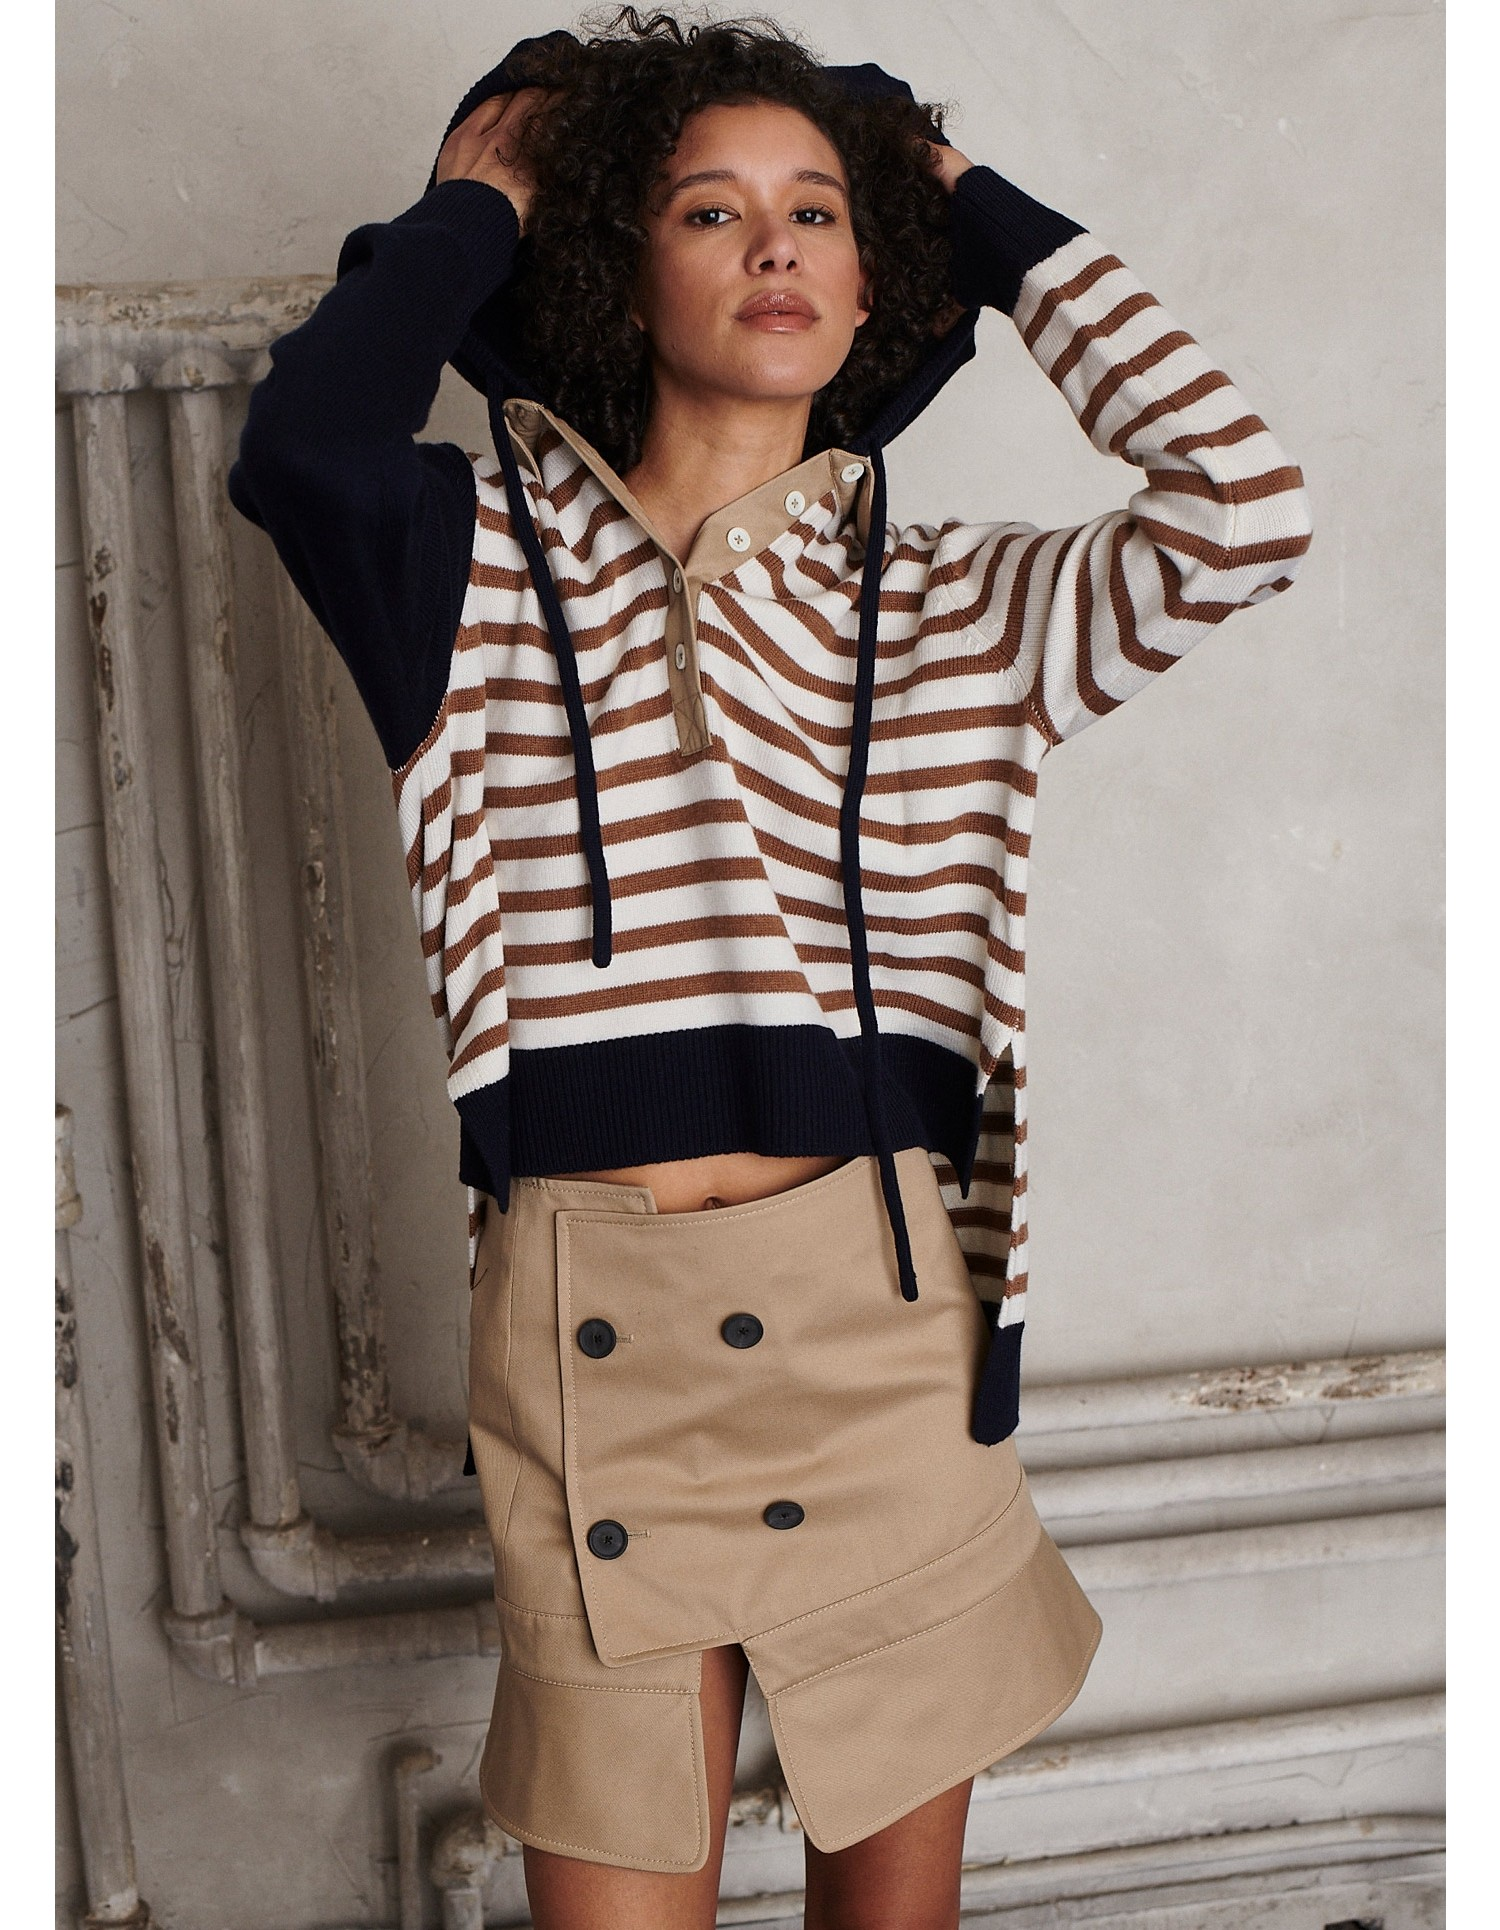 MONSE Upside Down Trench Collar Skirt on Model Front View